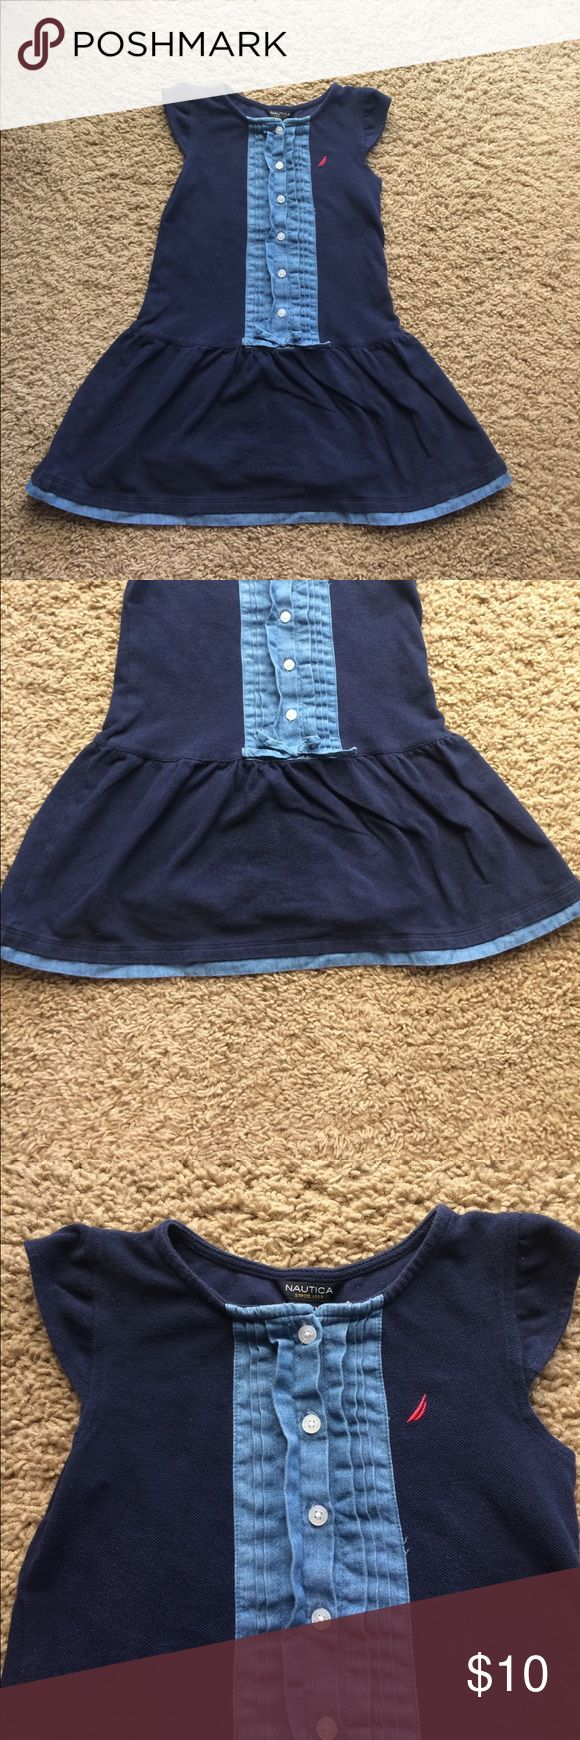 Beautiful navy  Nautica drop waist dress Navy drop waist dress with denim ruffle on front and bottom of skirt. Six buttons down front with bow . Worn just a few times, in perfect condition. Nautica Dresses Casual